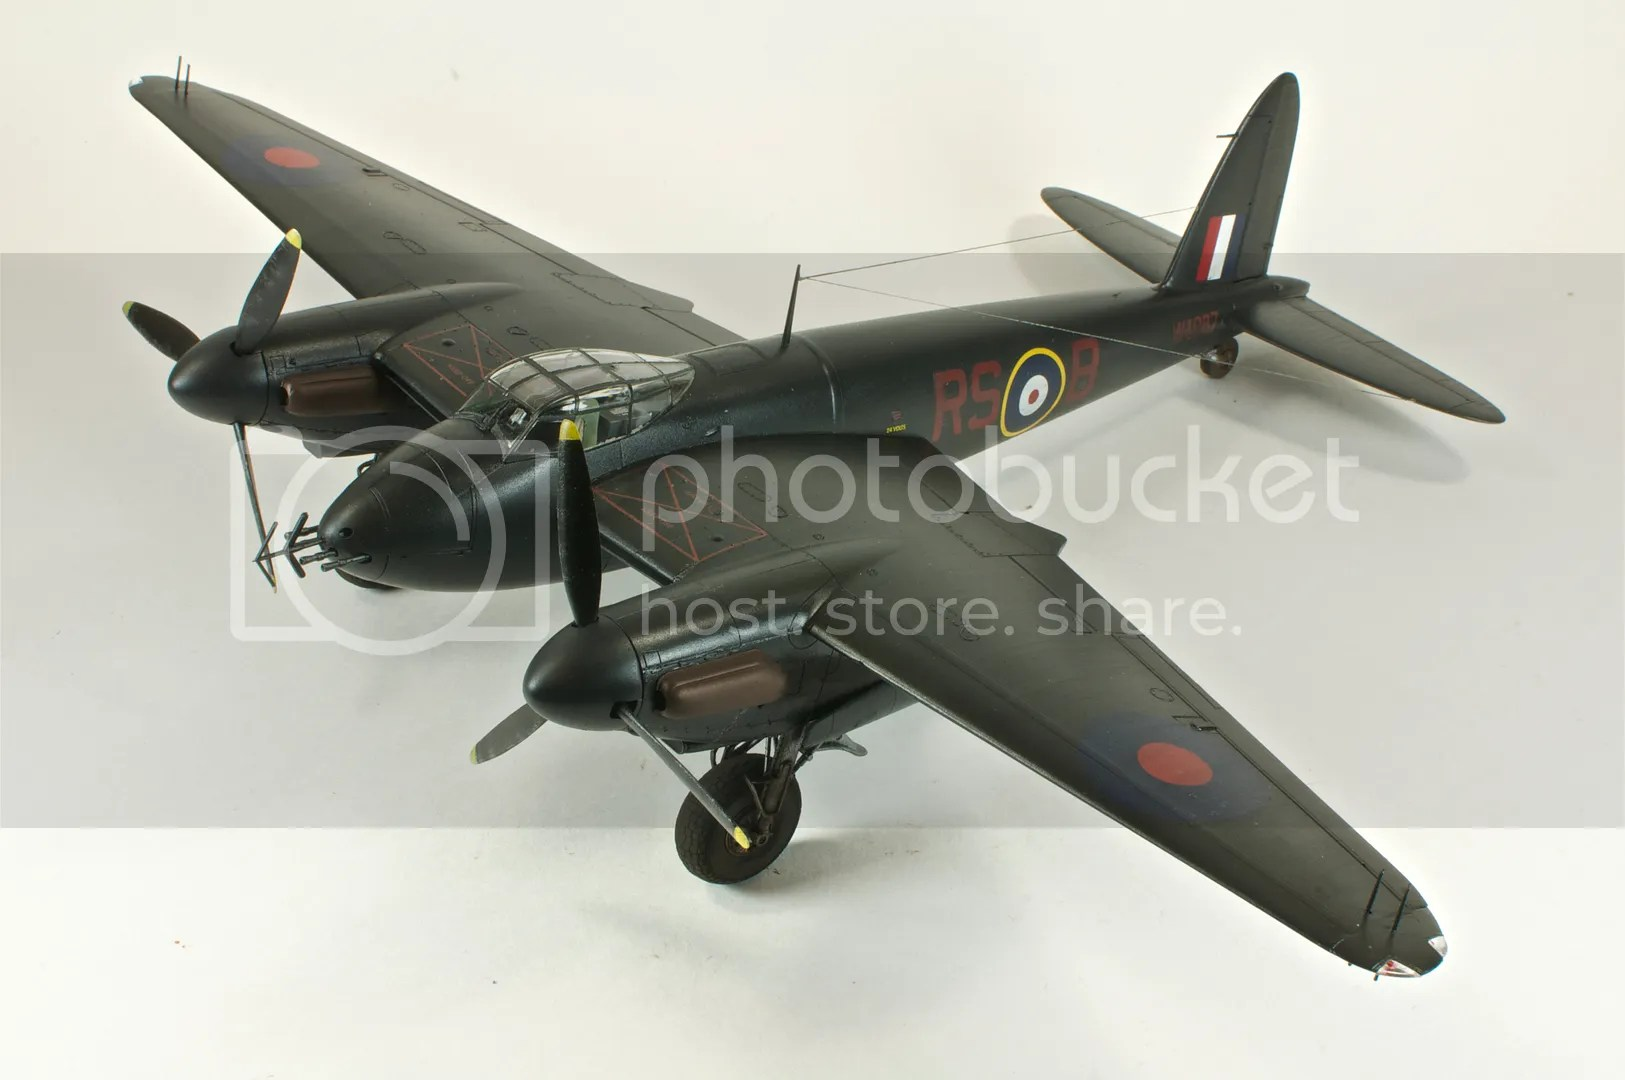 March,Mosquito NFII,2011,scale models,1/48,Nikon D300s,Tamiya